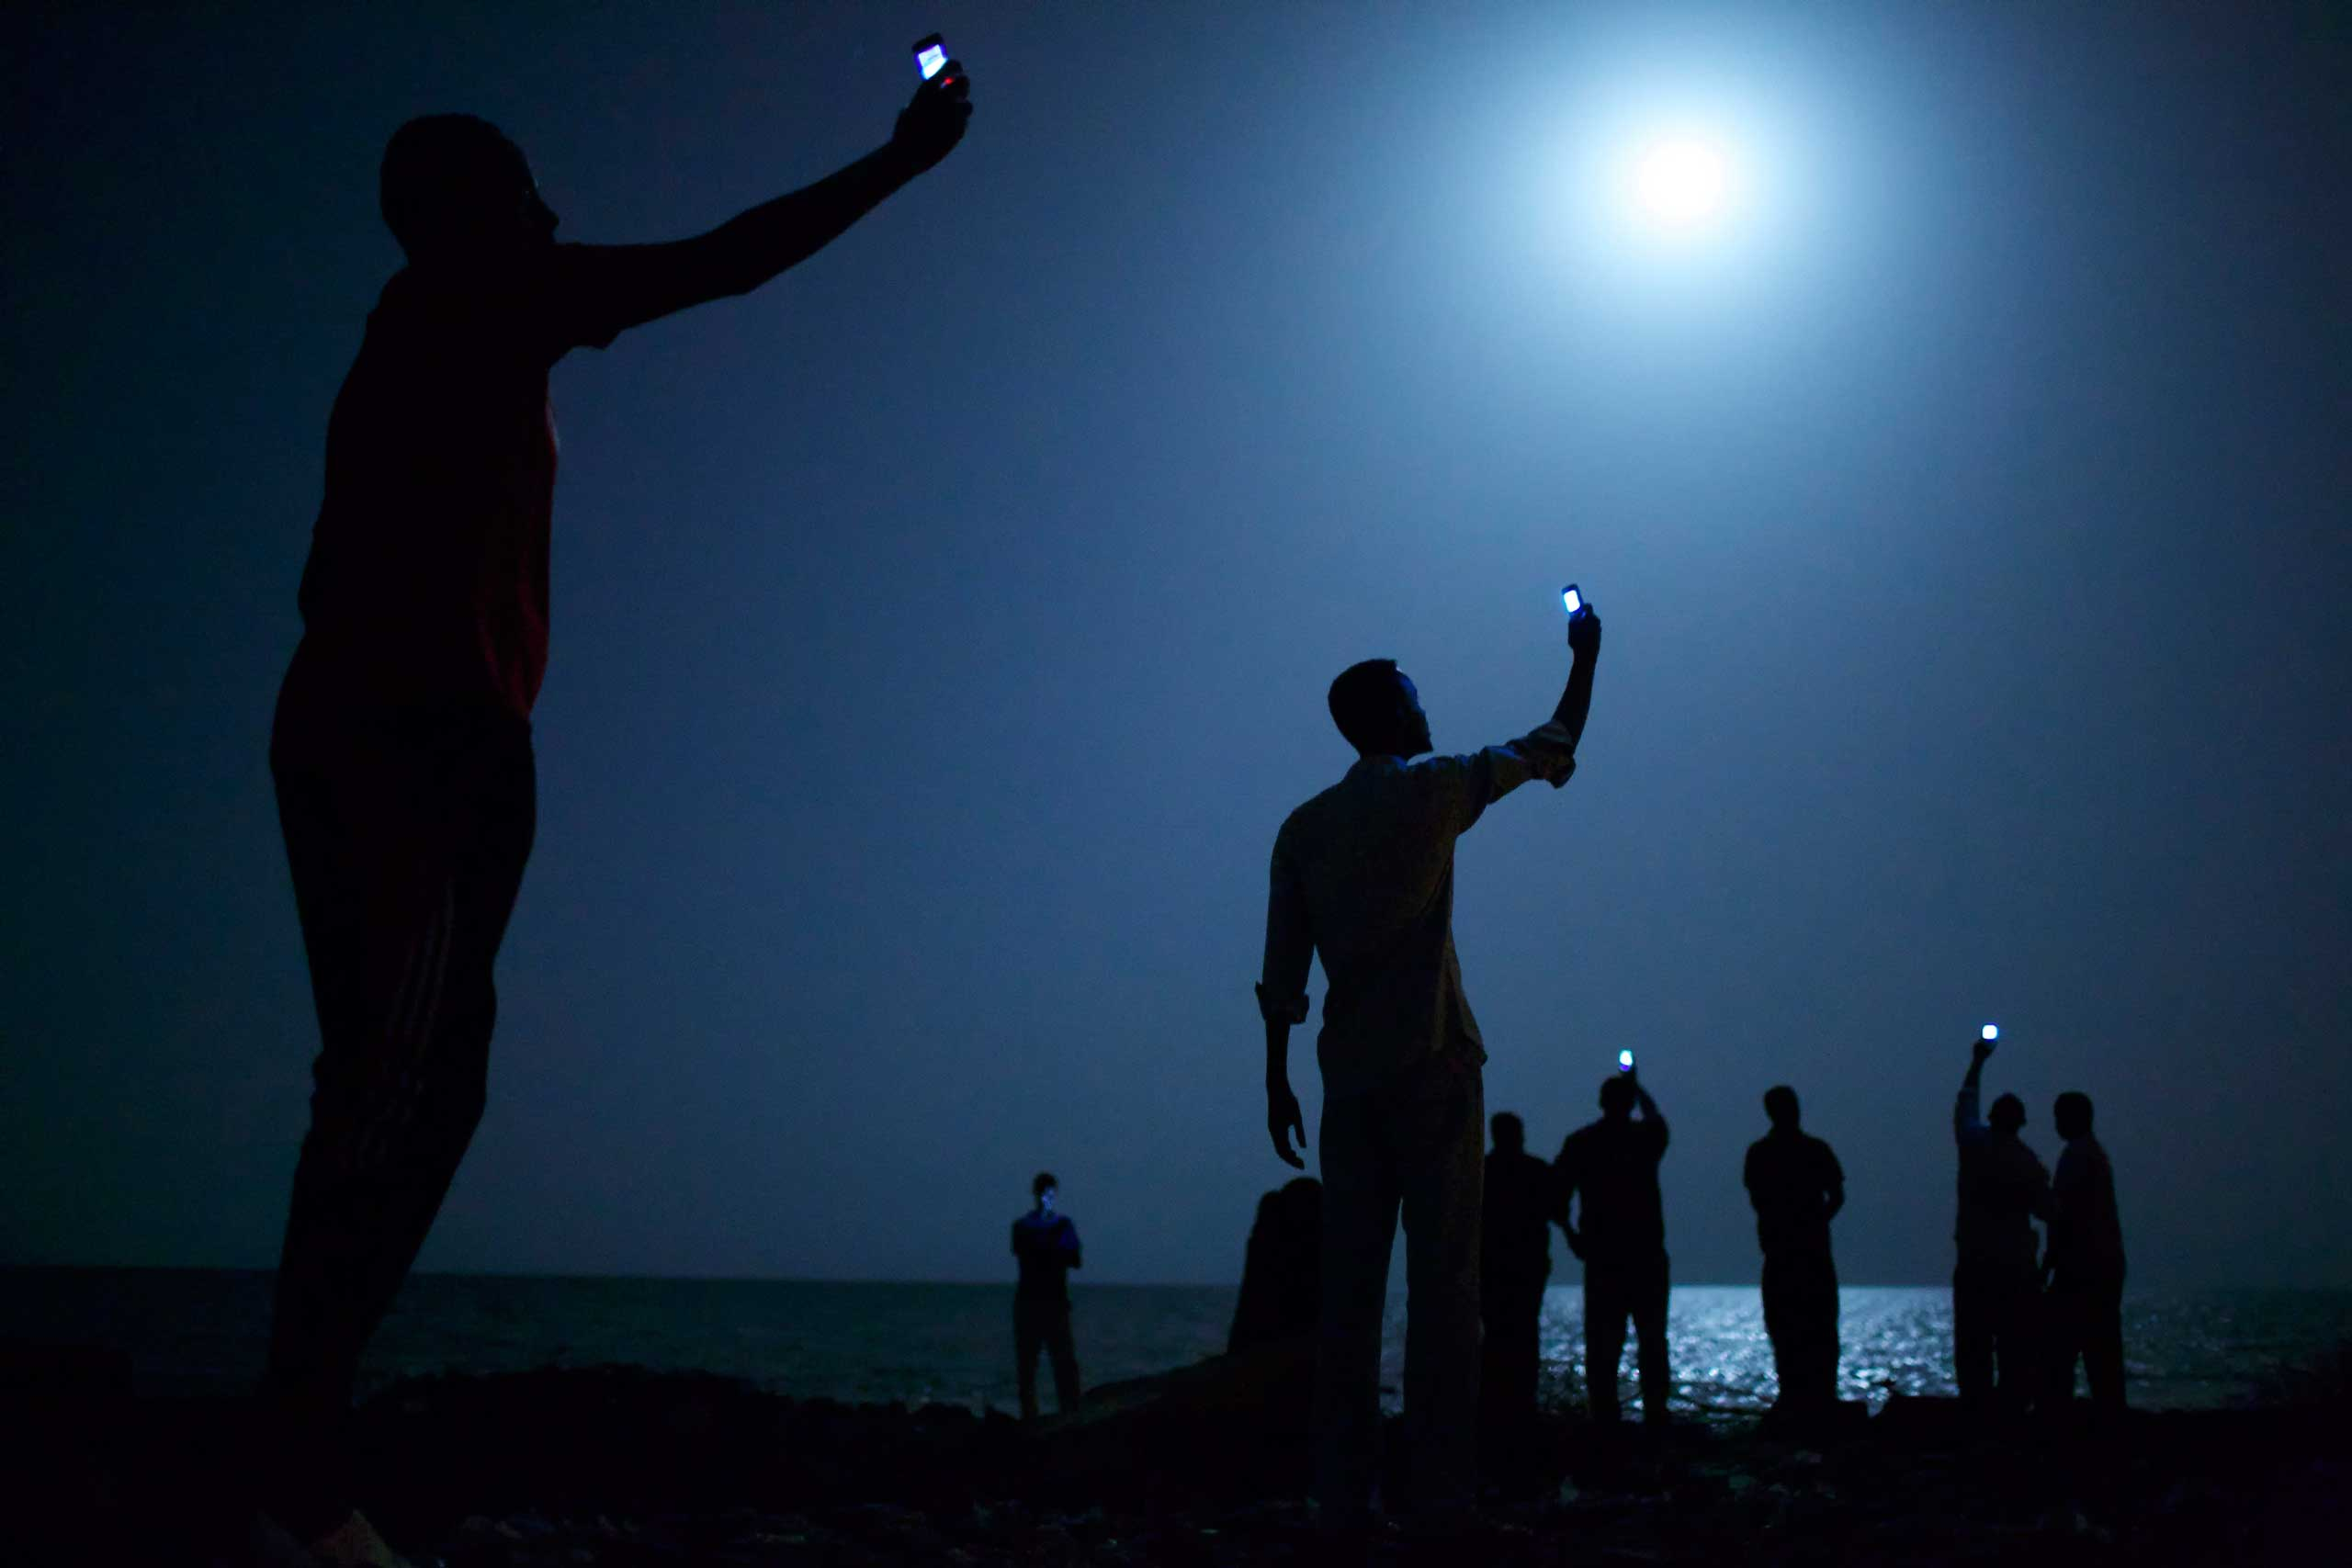 Vogue Italy: Interview with John StanmeyerSomalis wave their mobile phones doing what is known among locals as 'catching,' in an attempt to catch or pickup the mobile phone tower in neighboring Somalia as they stand on Khorley Beach, also called Dead Water Beach, in Djibouti City, Djibouti, Feb. 26, 2013.